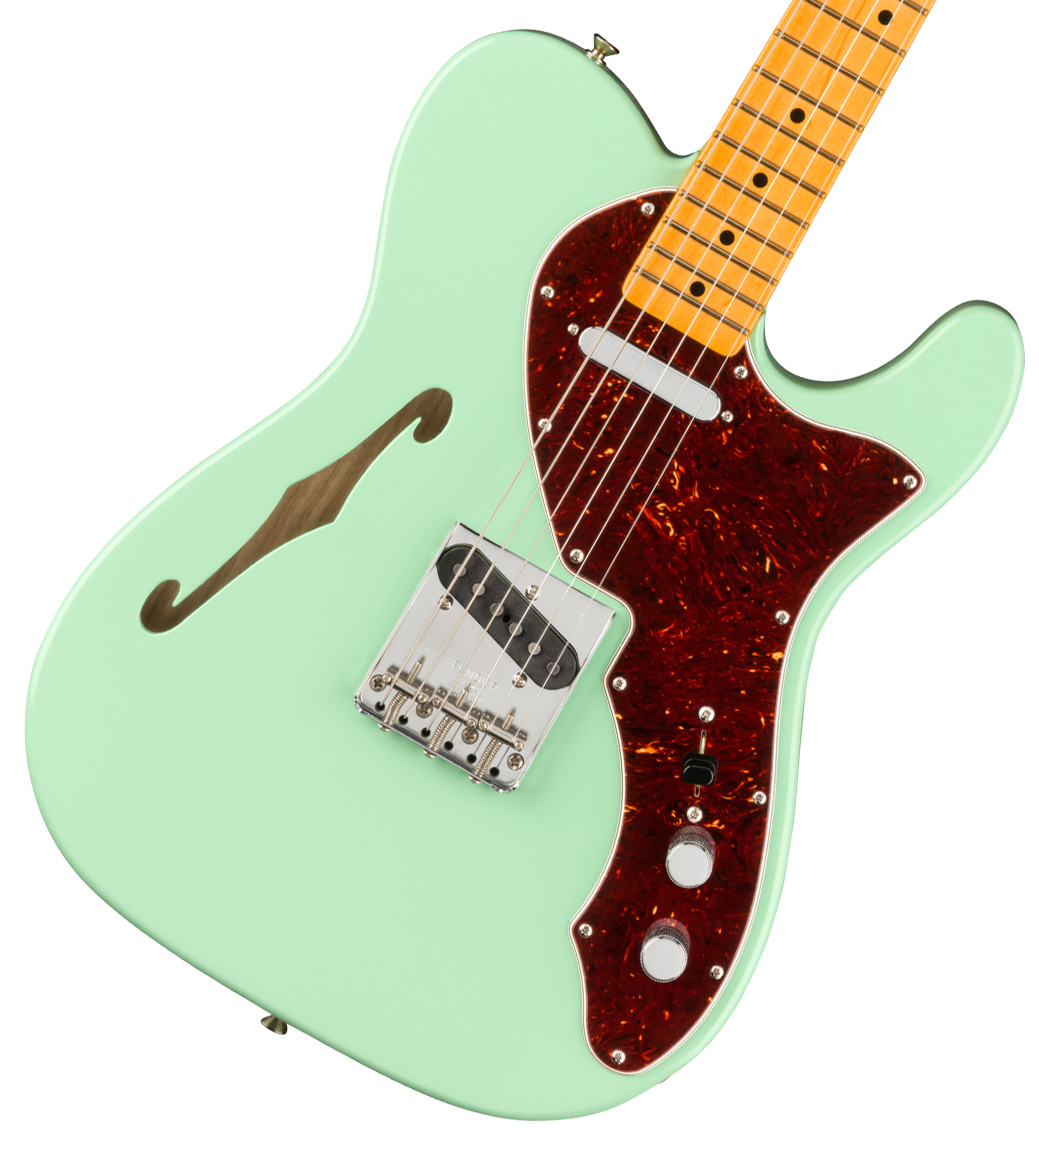 Fender / American Original 60s Telecaster Thinline Maple Fingerboard Surf Green フェンダー《純正ケーブル&ピック1ダースプレゼント!/+661944400》